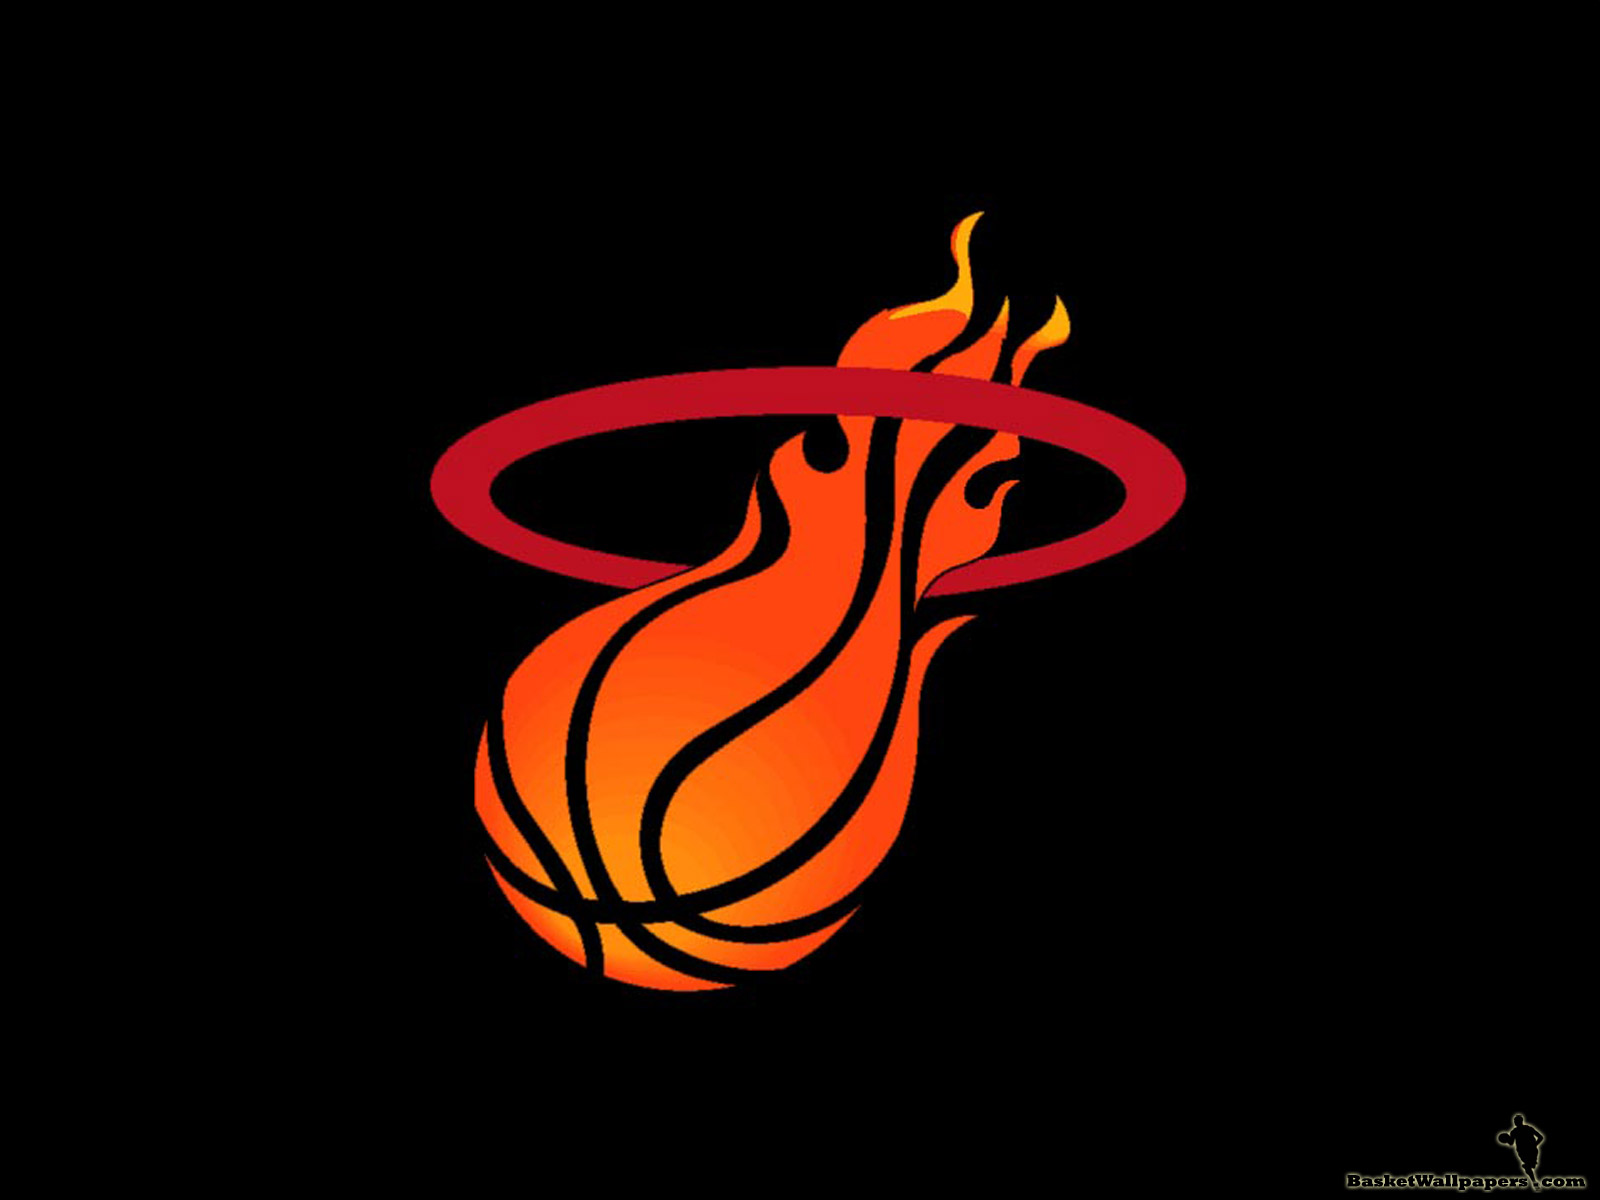 The second one is wallpaper of NBA team Miami Heat We have Miami Heat 1600x1200